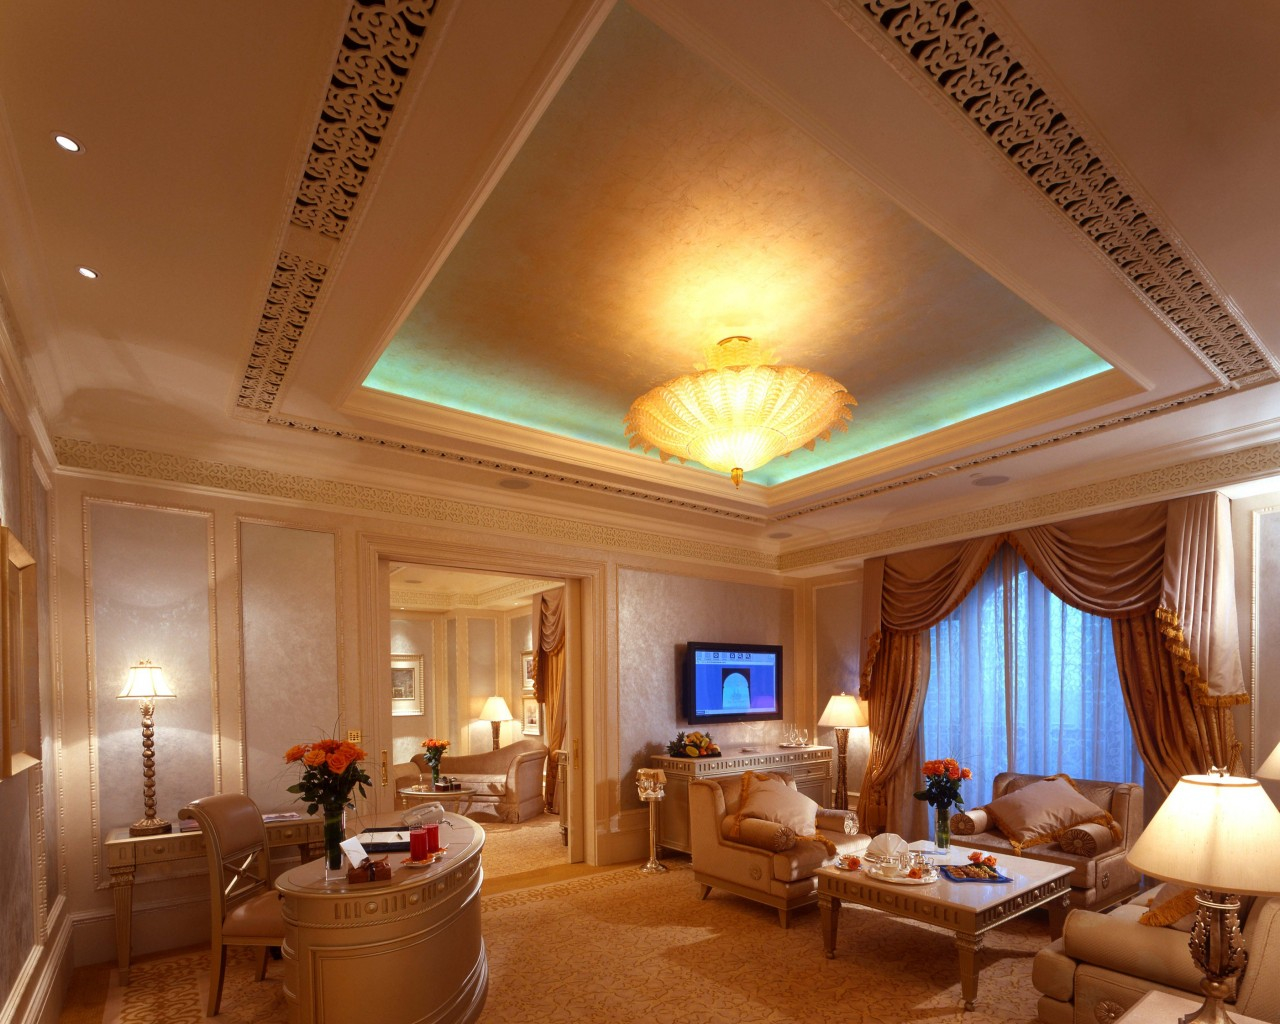 Emirates Palace A Royal Hotel In Abu Dhabi The Lux